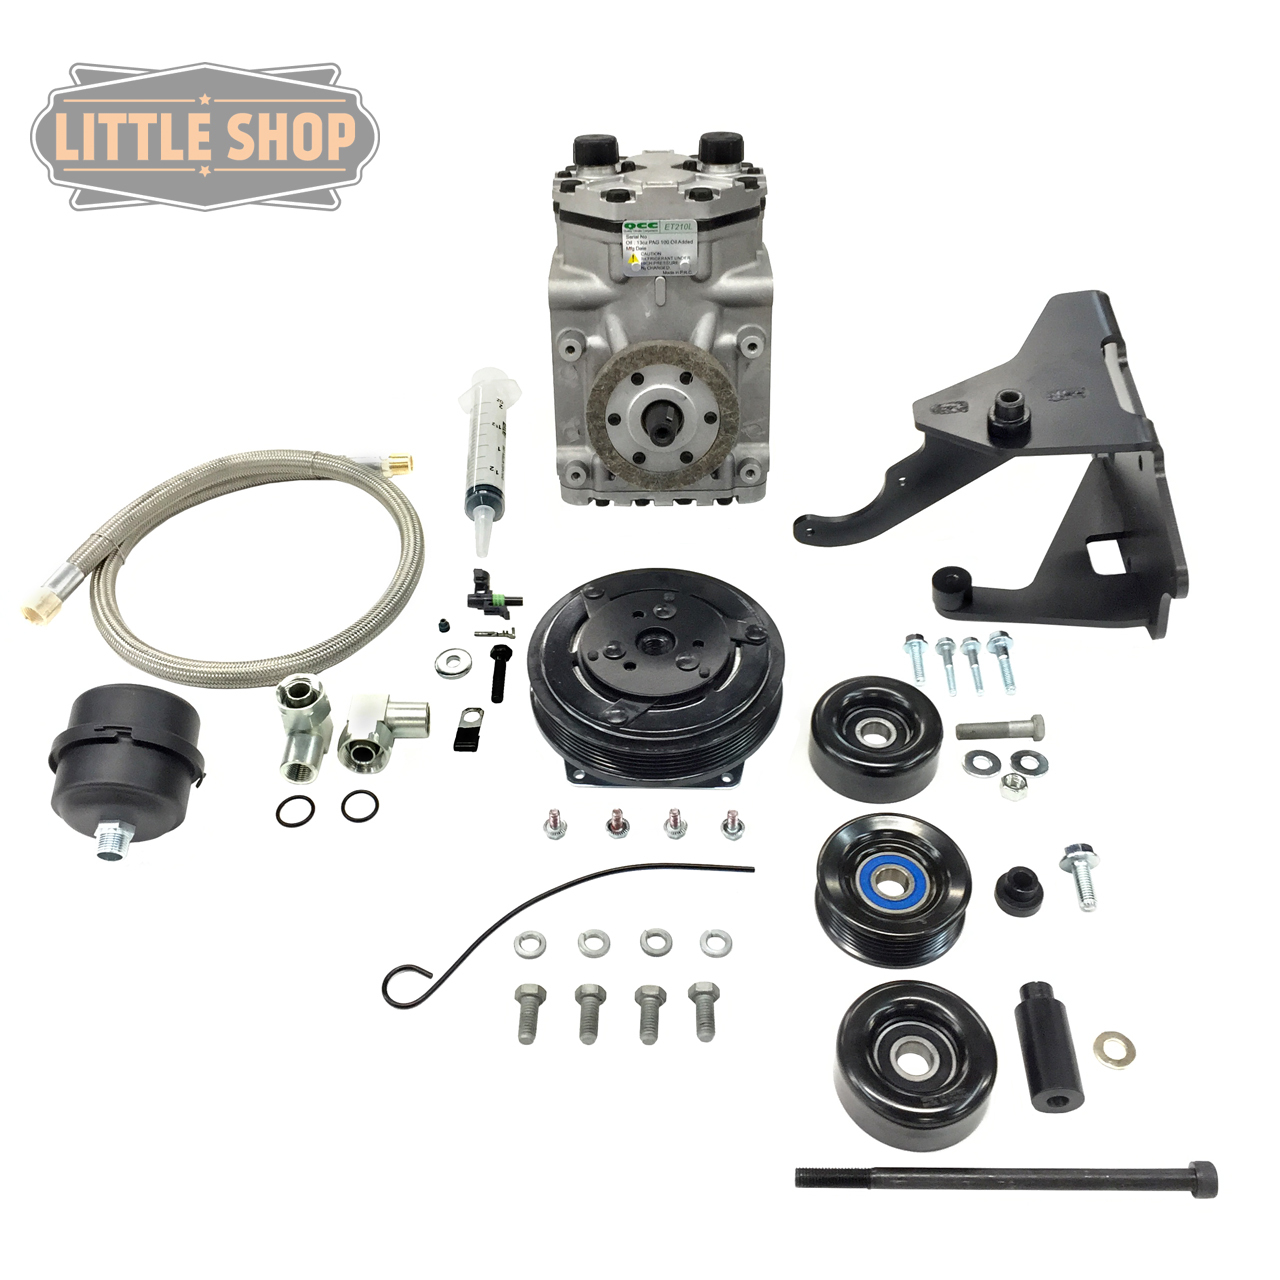 LSMFG-LT-EDC 14'-UP GM 5.3, 6.2 LT Engine Driven Compressor Kit